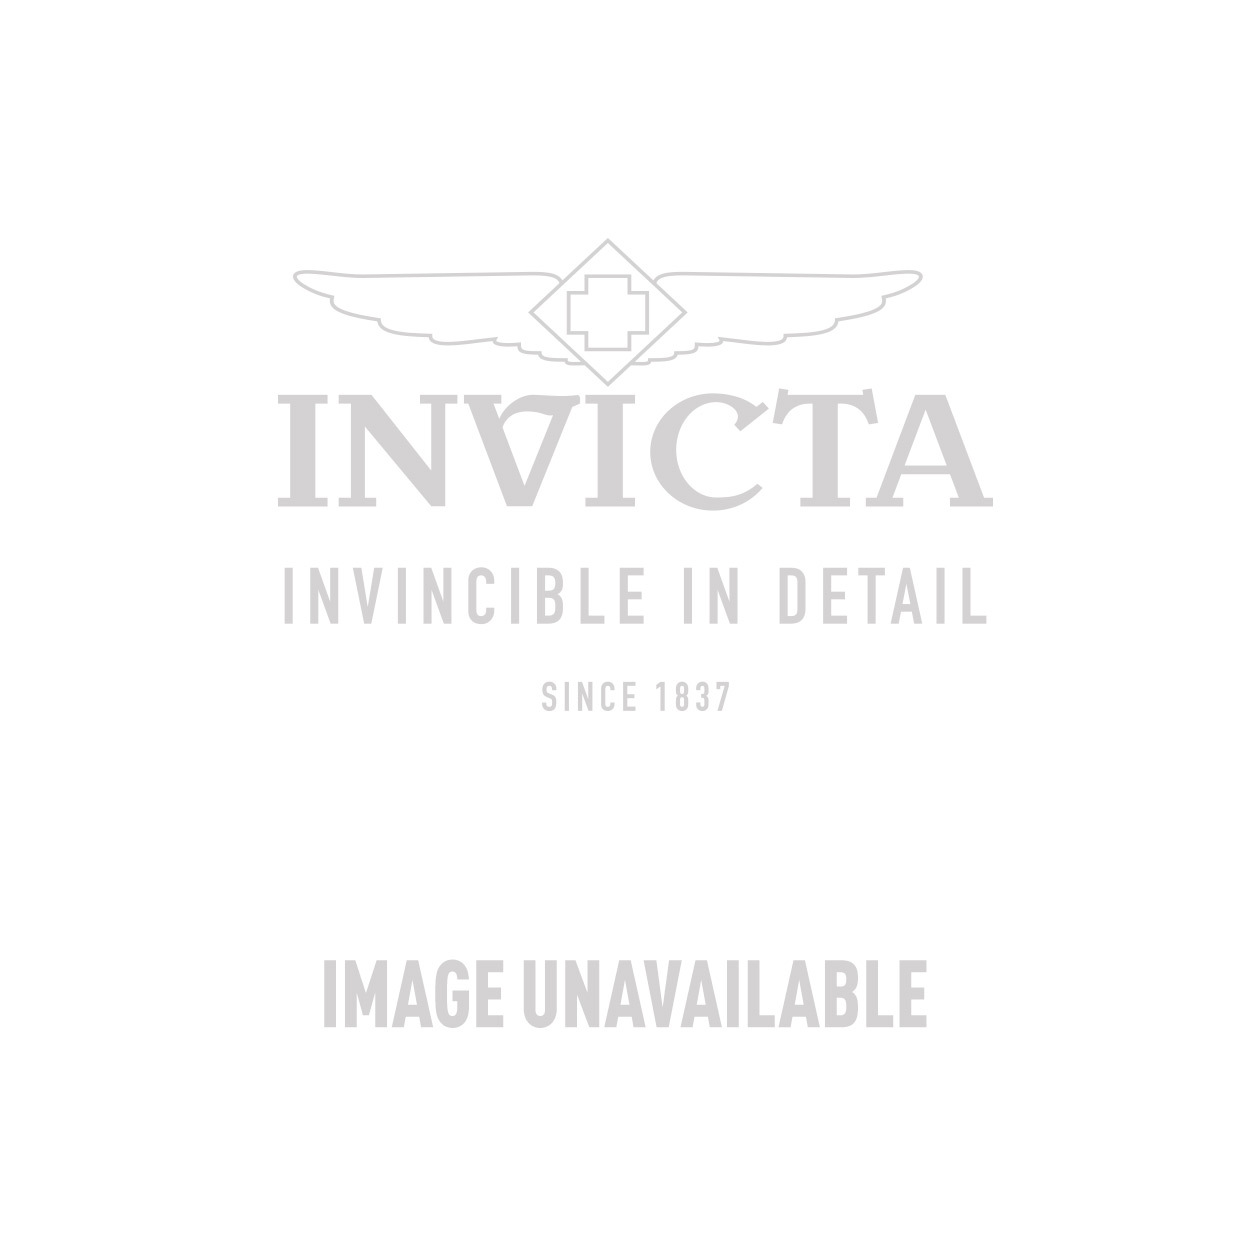 Invicta Coalition Forces Swiss Made Quartz Watch - Stainless Steel case Stainless Steel band - Model 14008